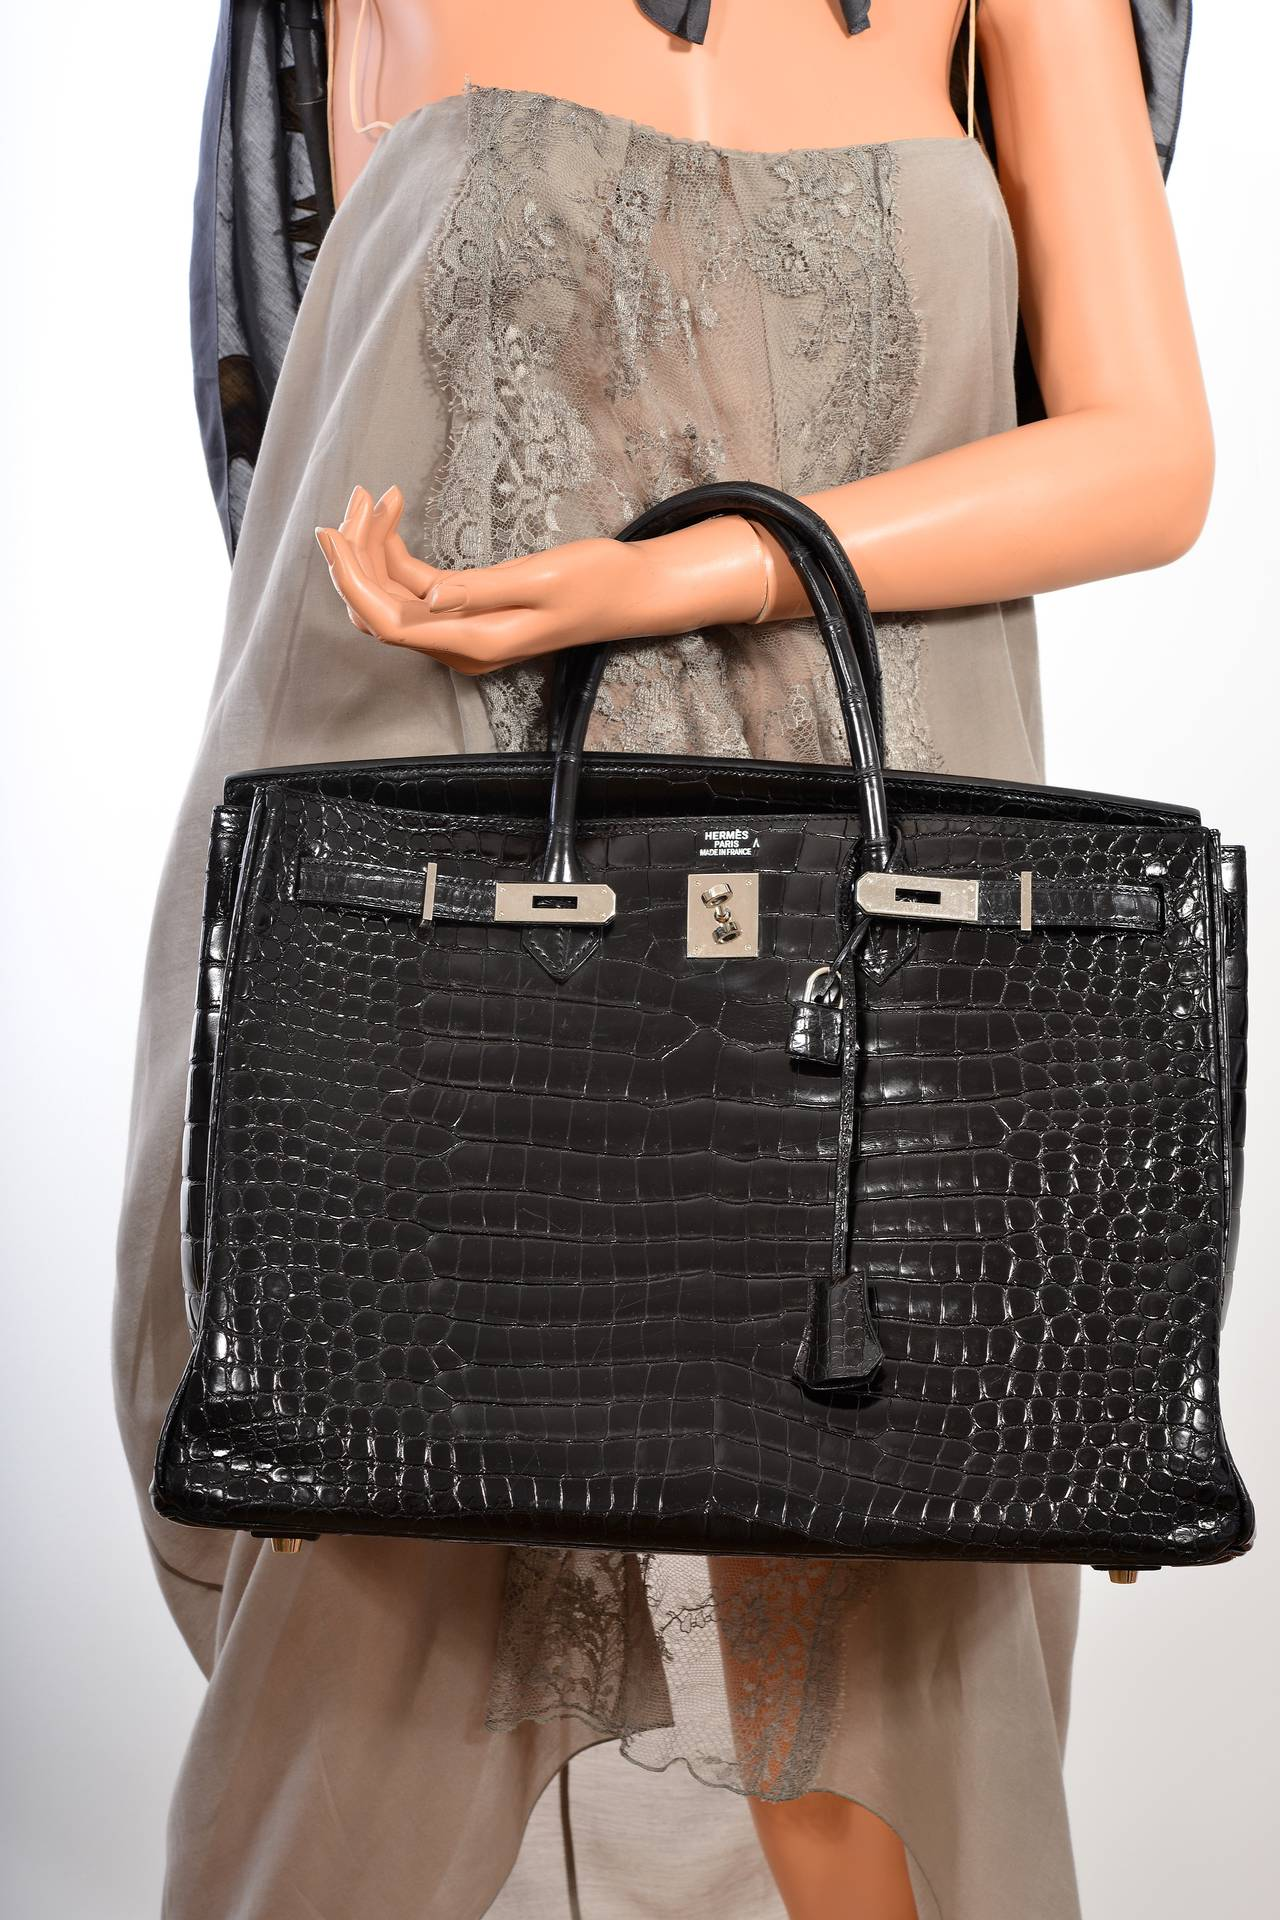 hermes kelly replica - hermes birkin bag 40cm black crocodile porosus phw dream bag ...